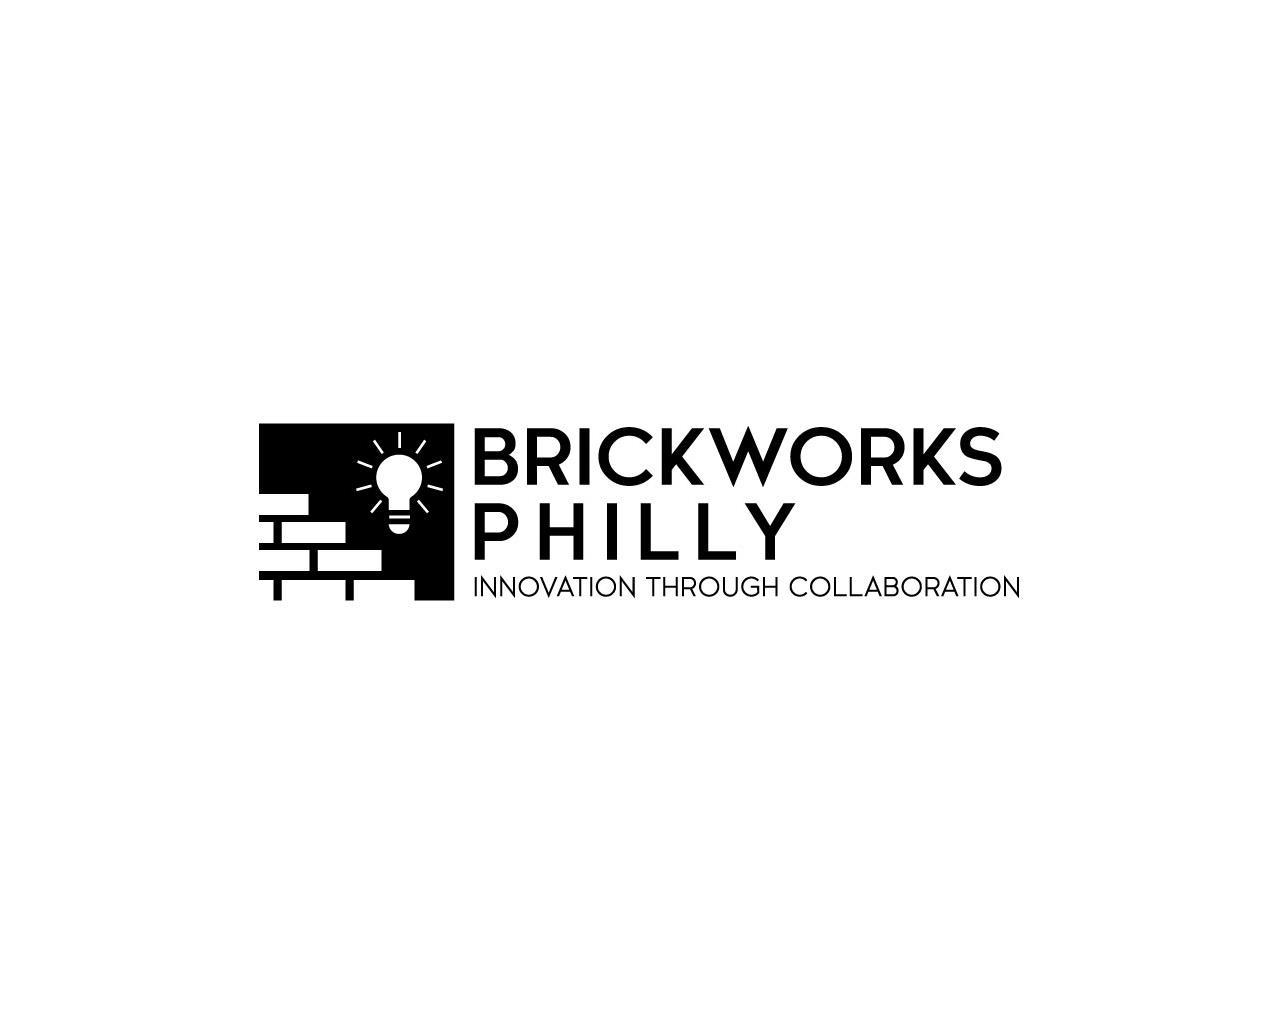 Logo of Brickworks Philly